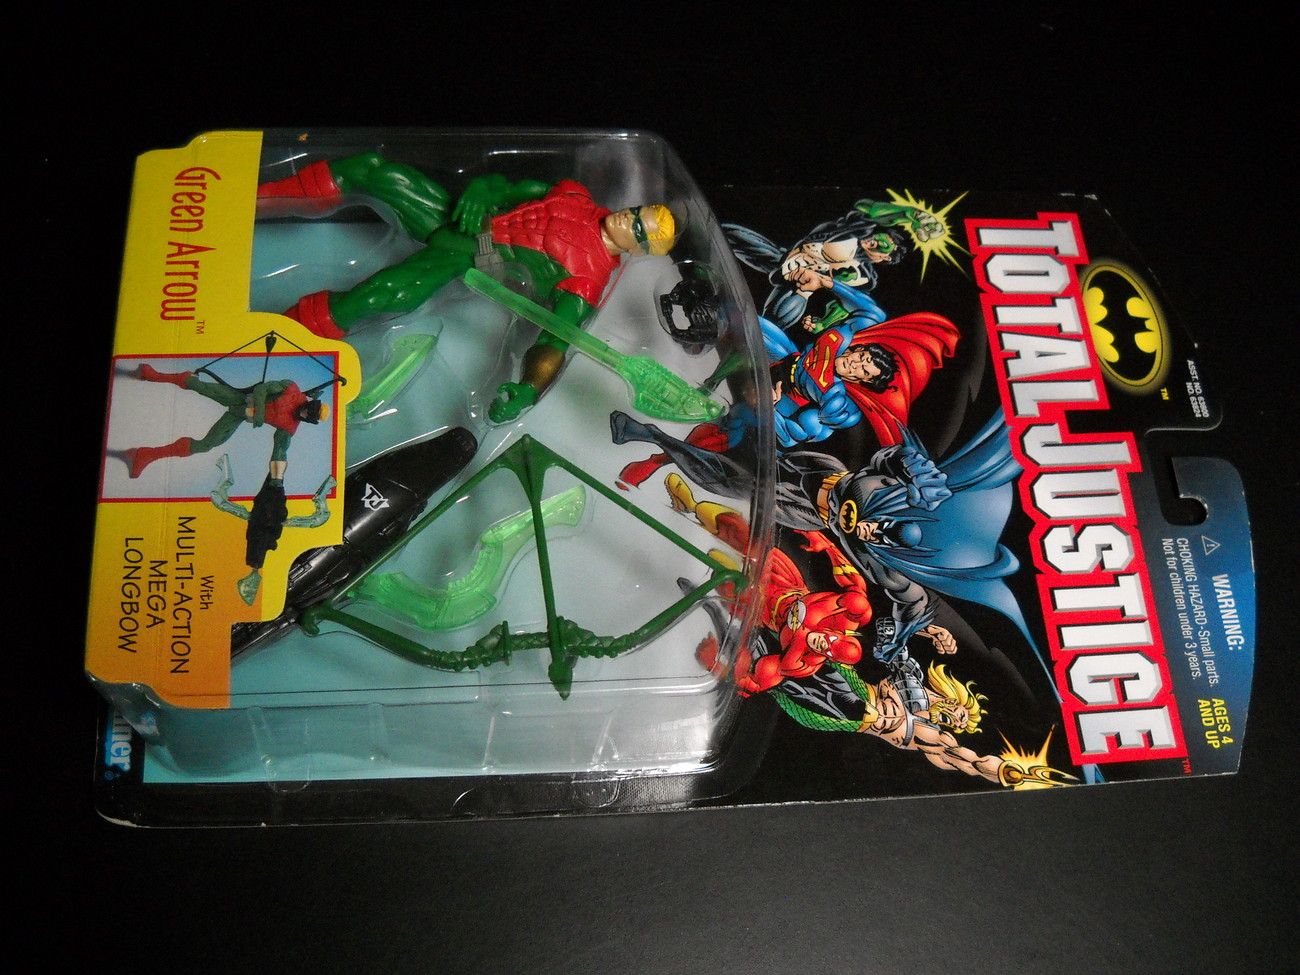 Toy justice league kenner hasbro 1997 total justice green arrow moc 02